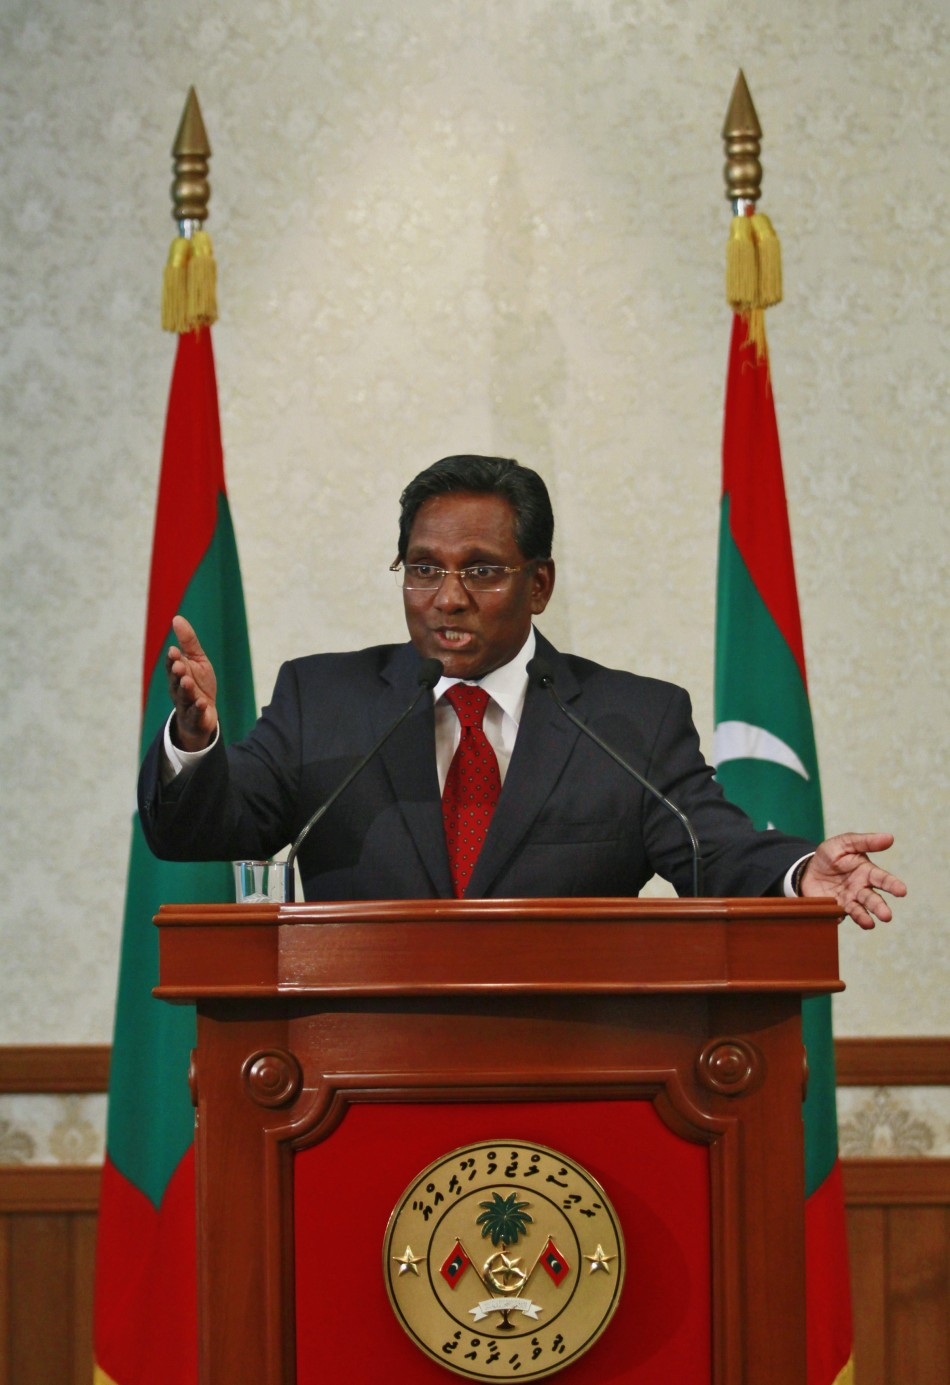 Maldives' newly appointed President Manik speaks during a news conference in Male